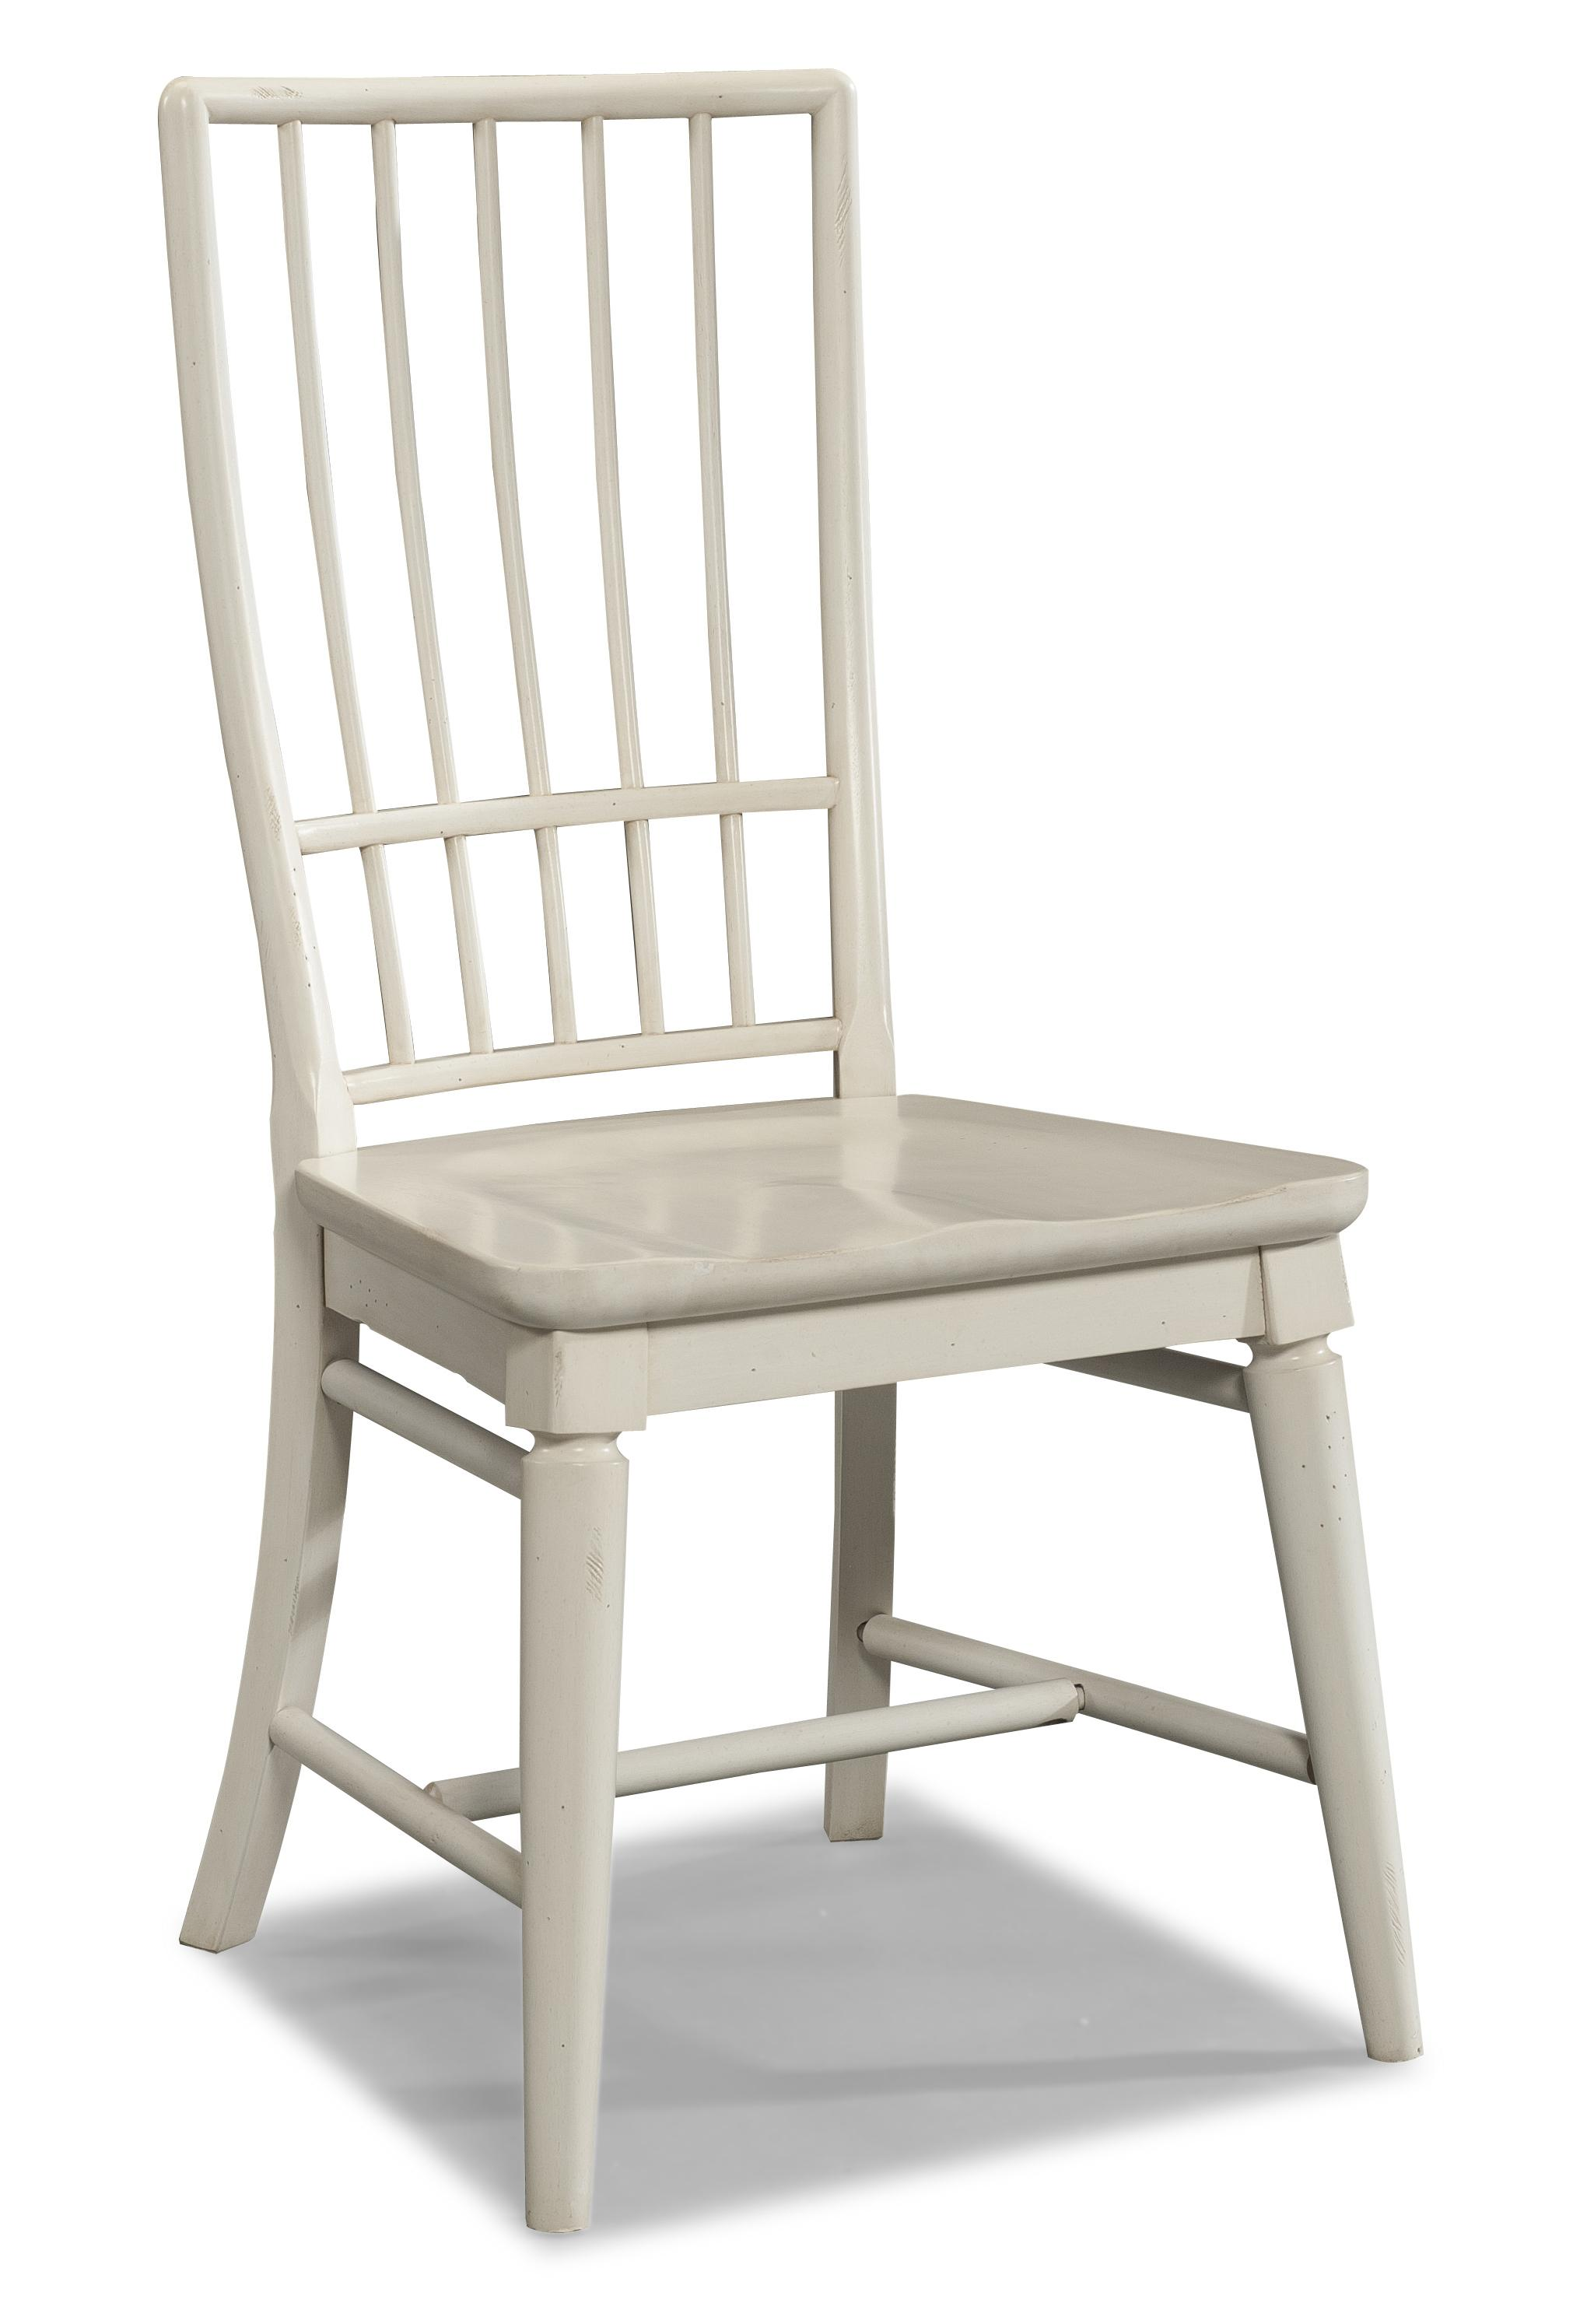 Easton Collection Sea Breeze White Rake Back Side Chair - Item Number: 424-900 DRC